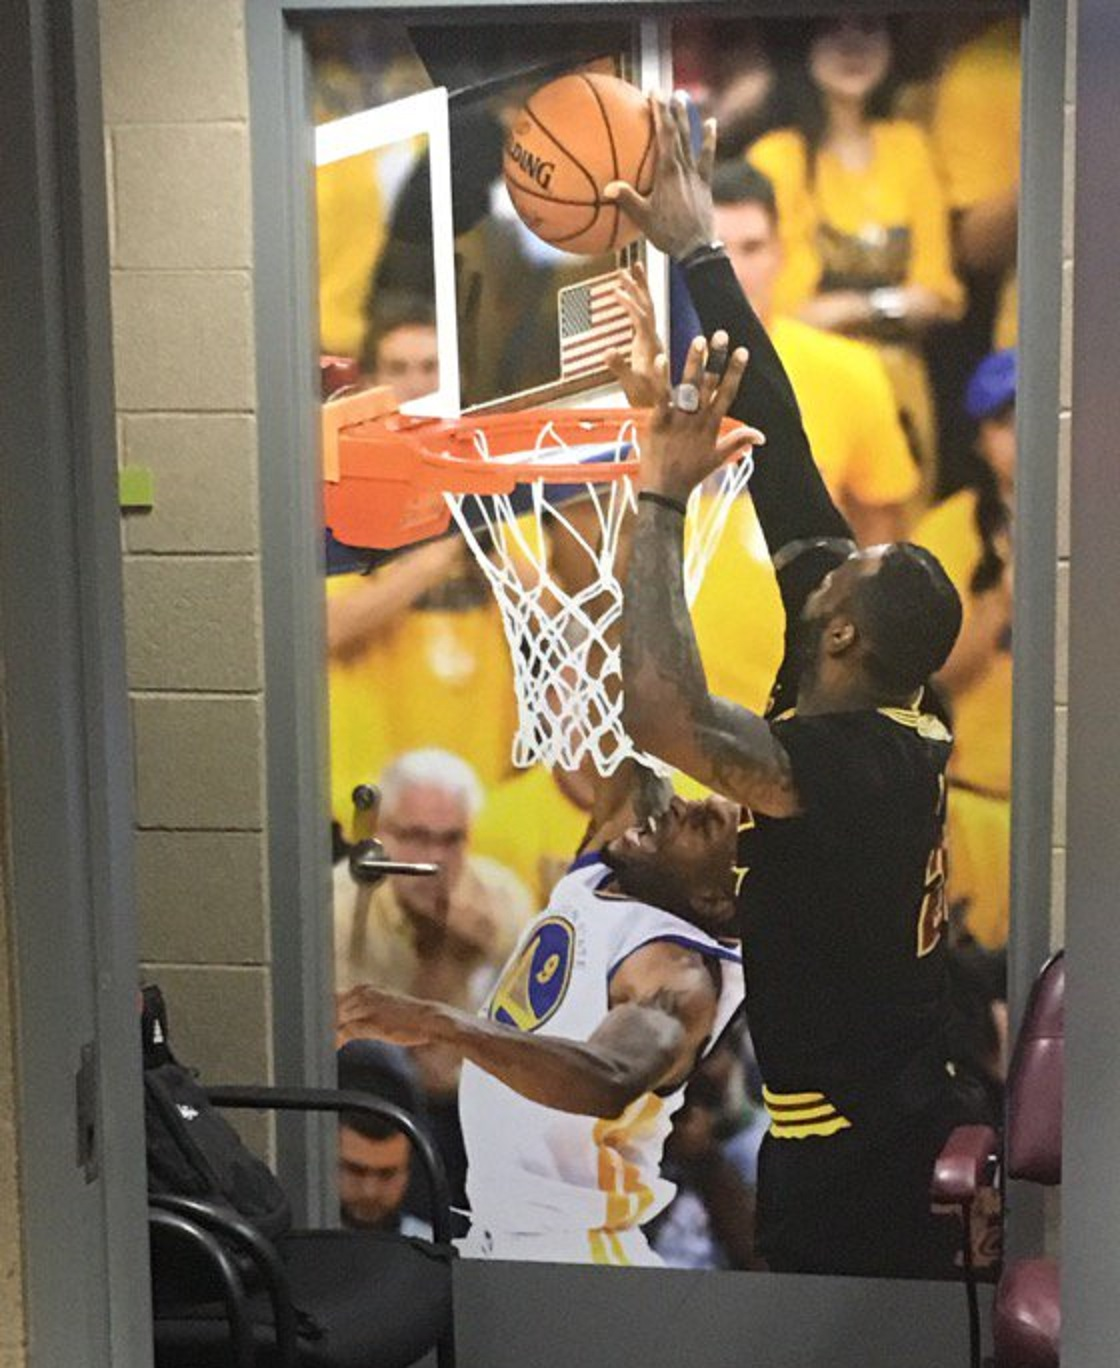 Cavaliers Hung Photo Of Lebron James' Gamesealing Finals. Cool Bedroom Decor. Rooms For Rent In Clearwater Fl. Interior Decorating Certificate Programs Online. Outdoor Beach Decor Ideas. Decorated Gourmet Cookies. Sink For Laundry Room. Narrow Dining Room Tables. Decorative Outside Corner Molding